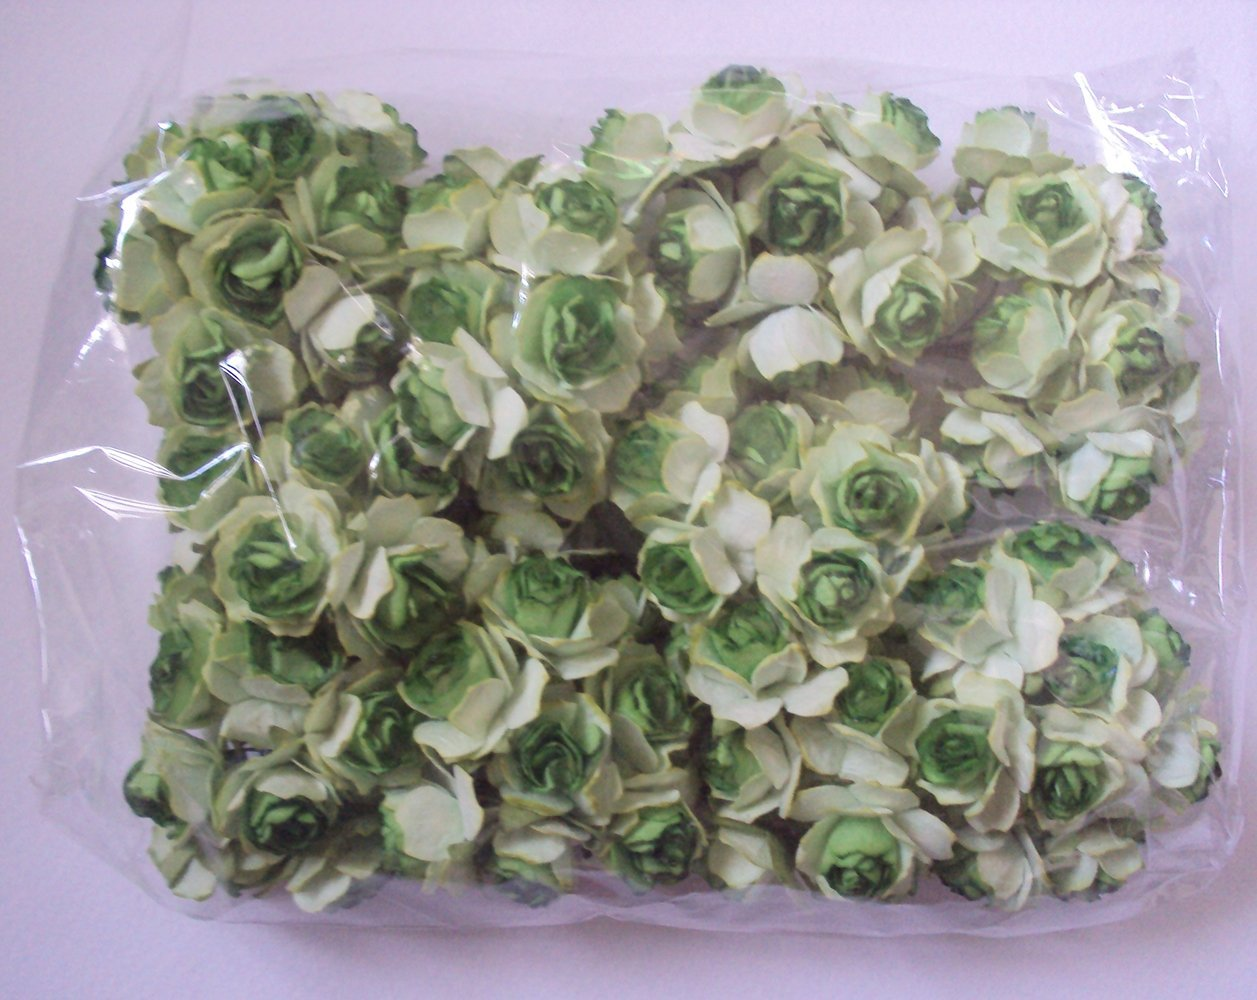 Agility 100 pcs. Green & White (Two-Tone) Artificial Mulberry Paper Rose Flower Wedding Scrapbook 2.0cm DIY Craft Scrapbook Scrapbooking Bouquet Craft Stem Handmade Rose Valentines Anniversary Embellishment